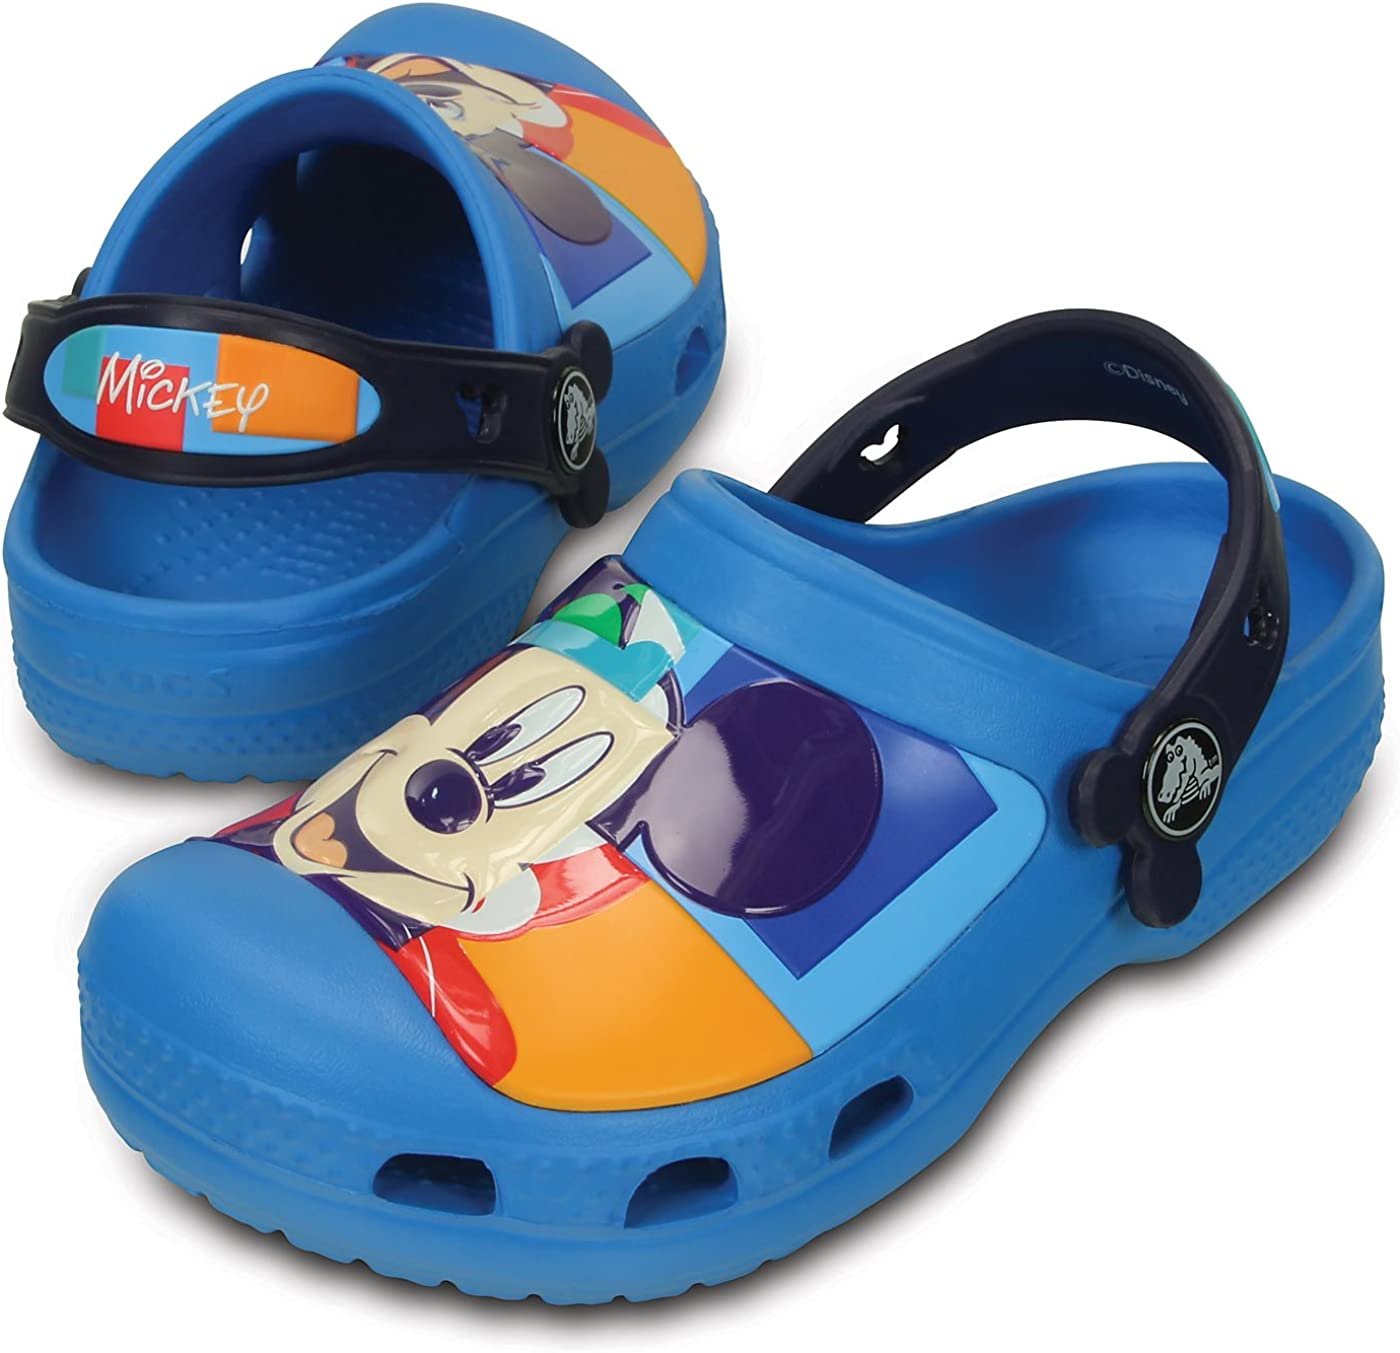 New-Crocs-CC-Mickey-Lined-Clog-roomy-fit-childrens-203532-black-glows-in-dark